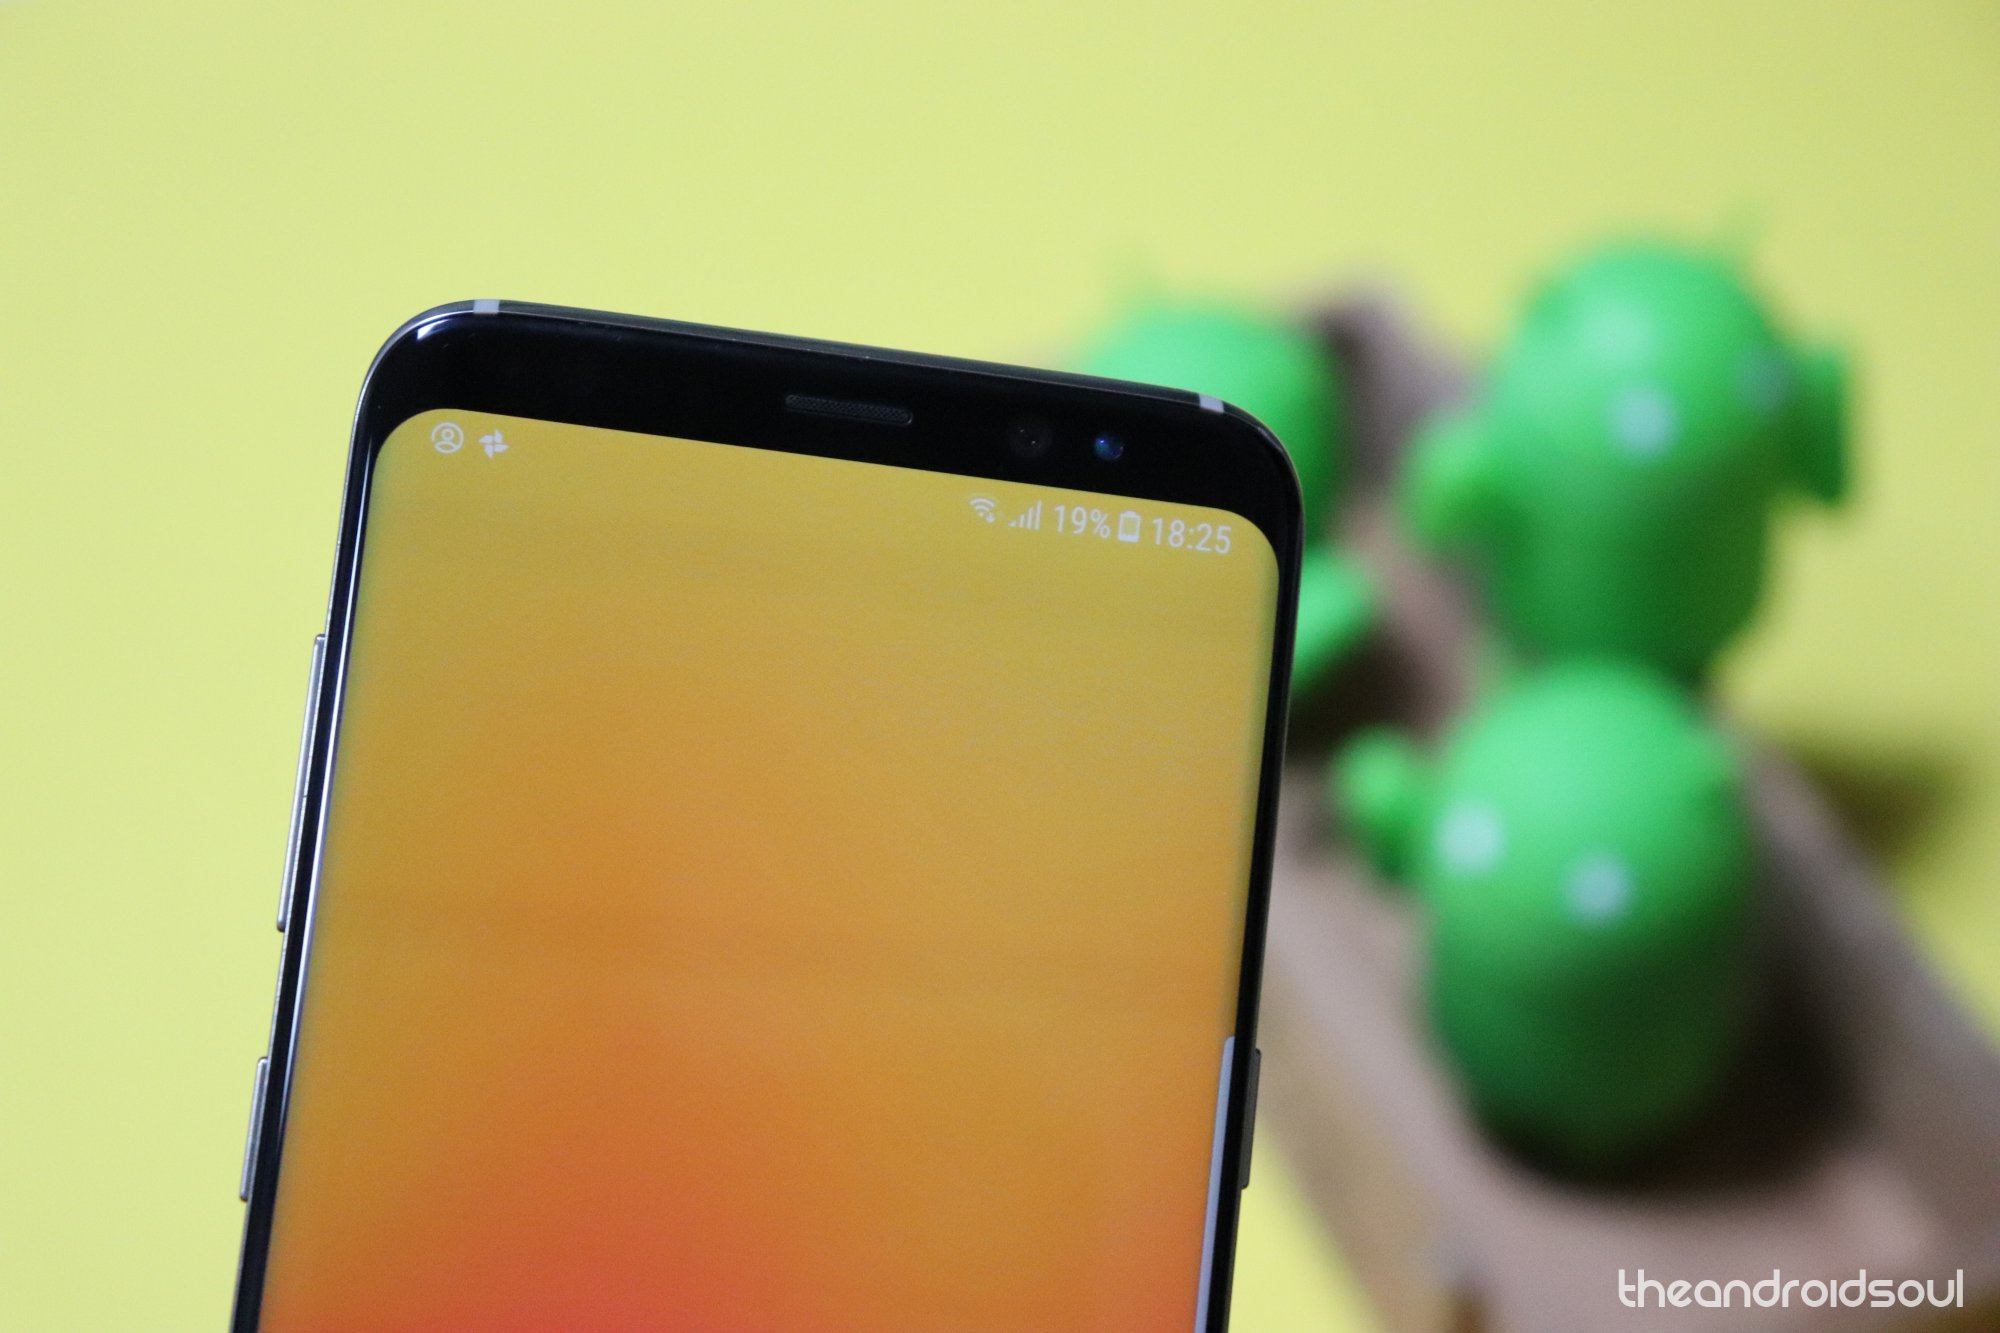 Galaxy-S8-images-15